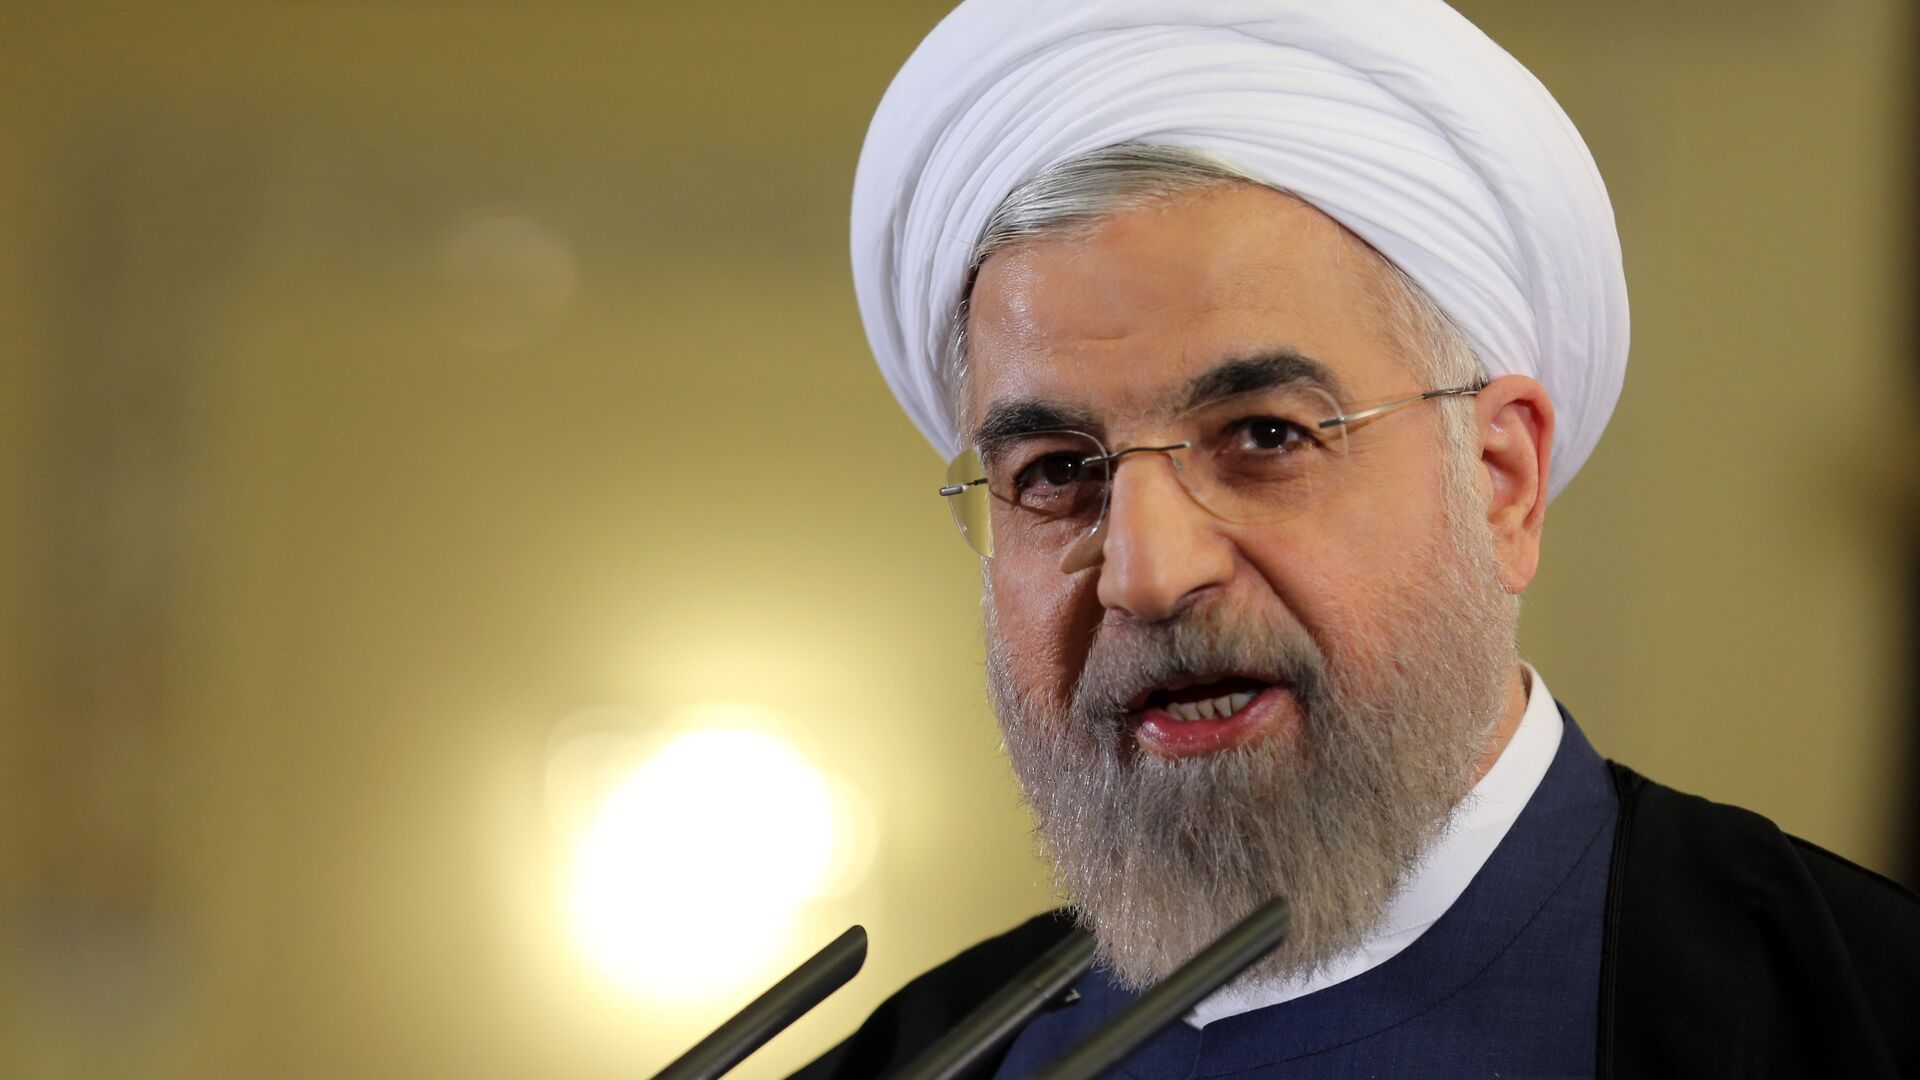 Iranian President Hassan Rouhani speaks during a press conference in Tehran on April 3, 2015. - Sputnik Mundo, 1920, 07.04.2021